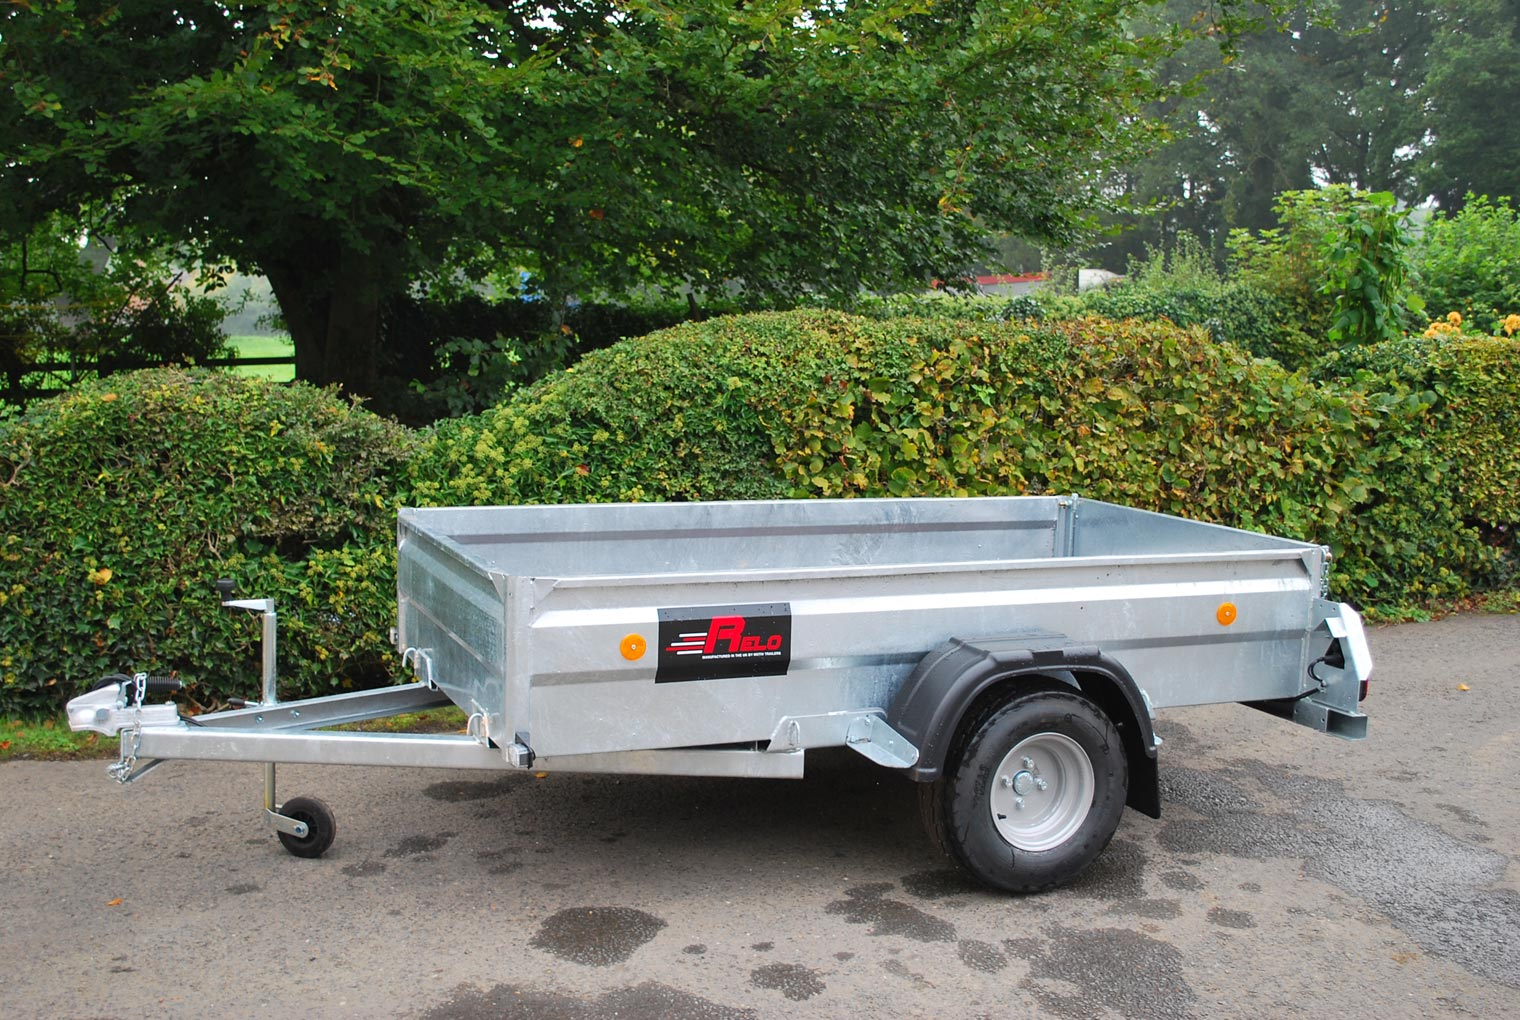 Relo On Road Model 74 Trailer base model